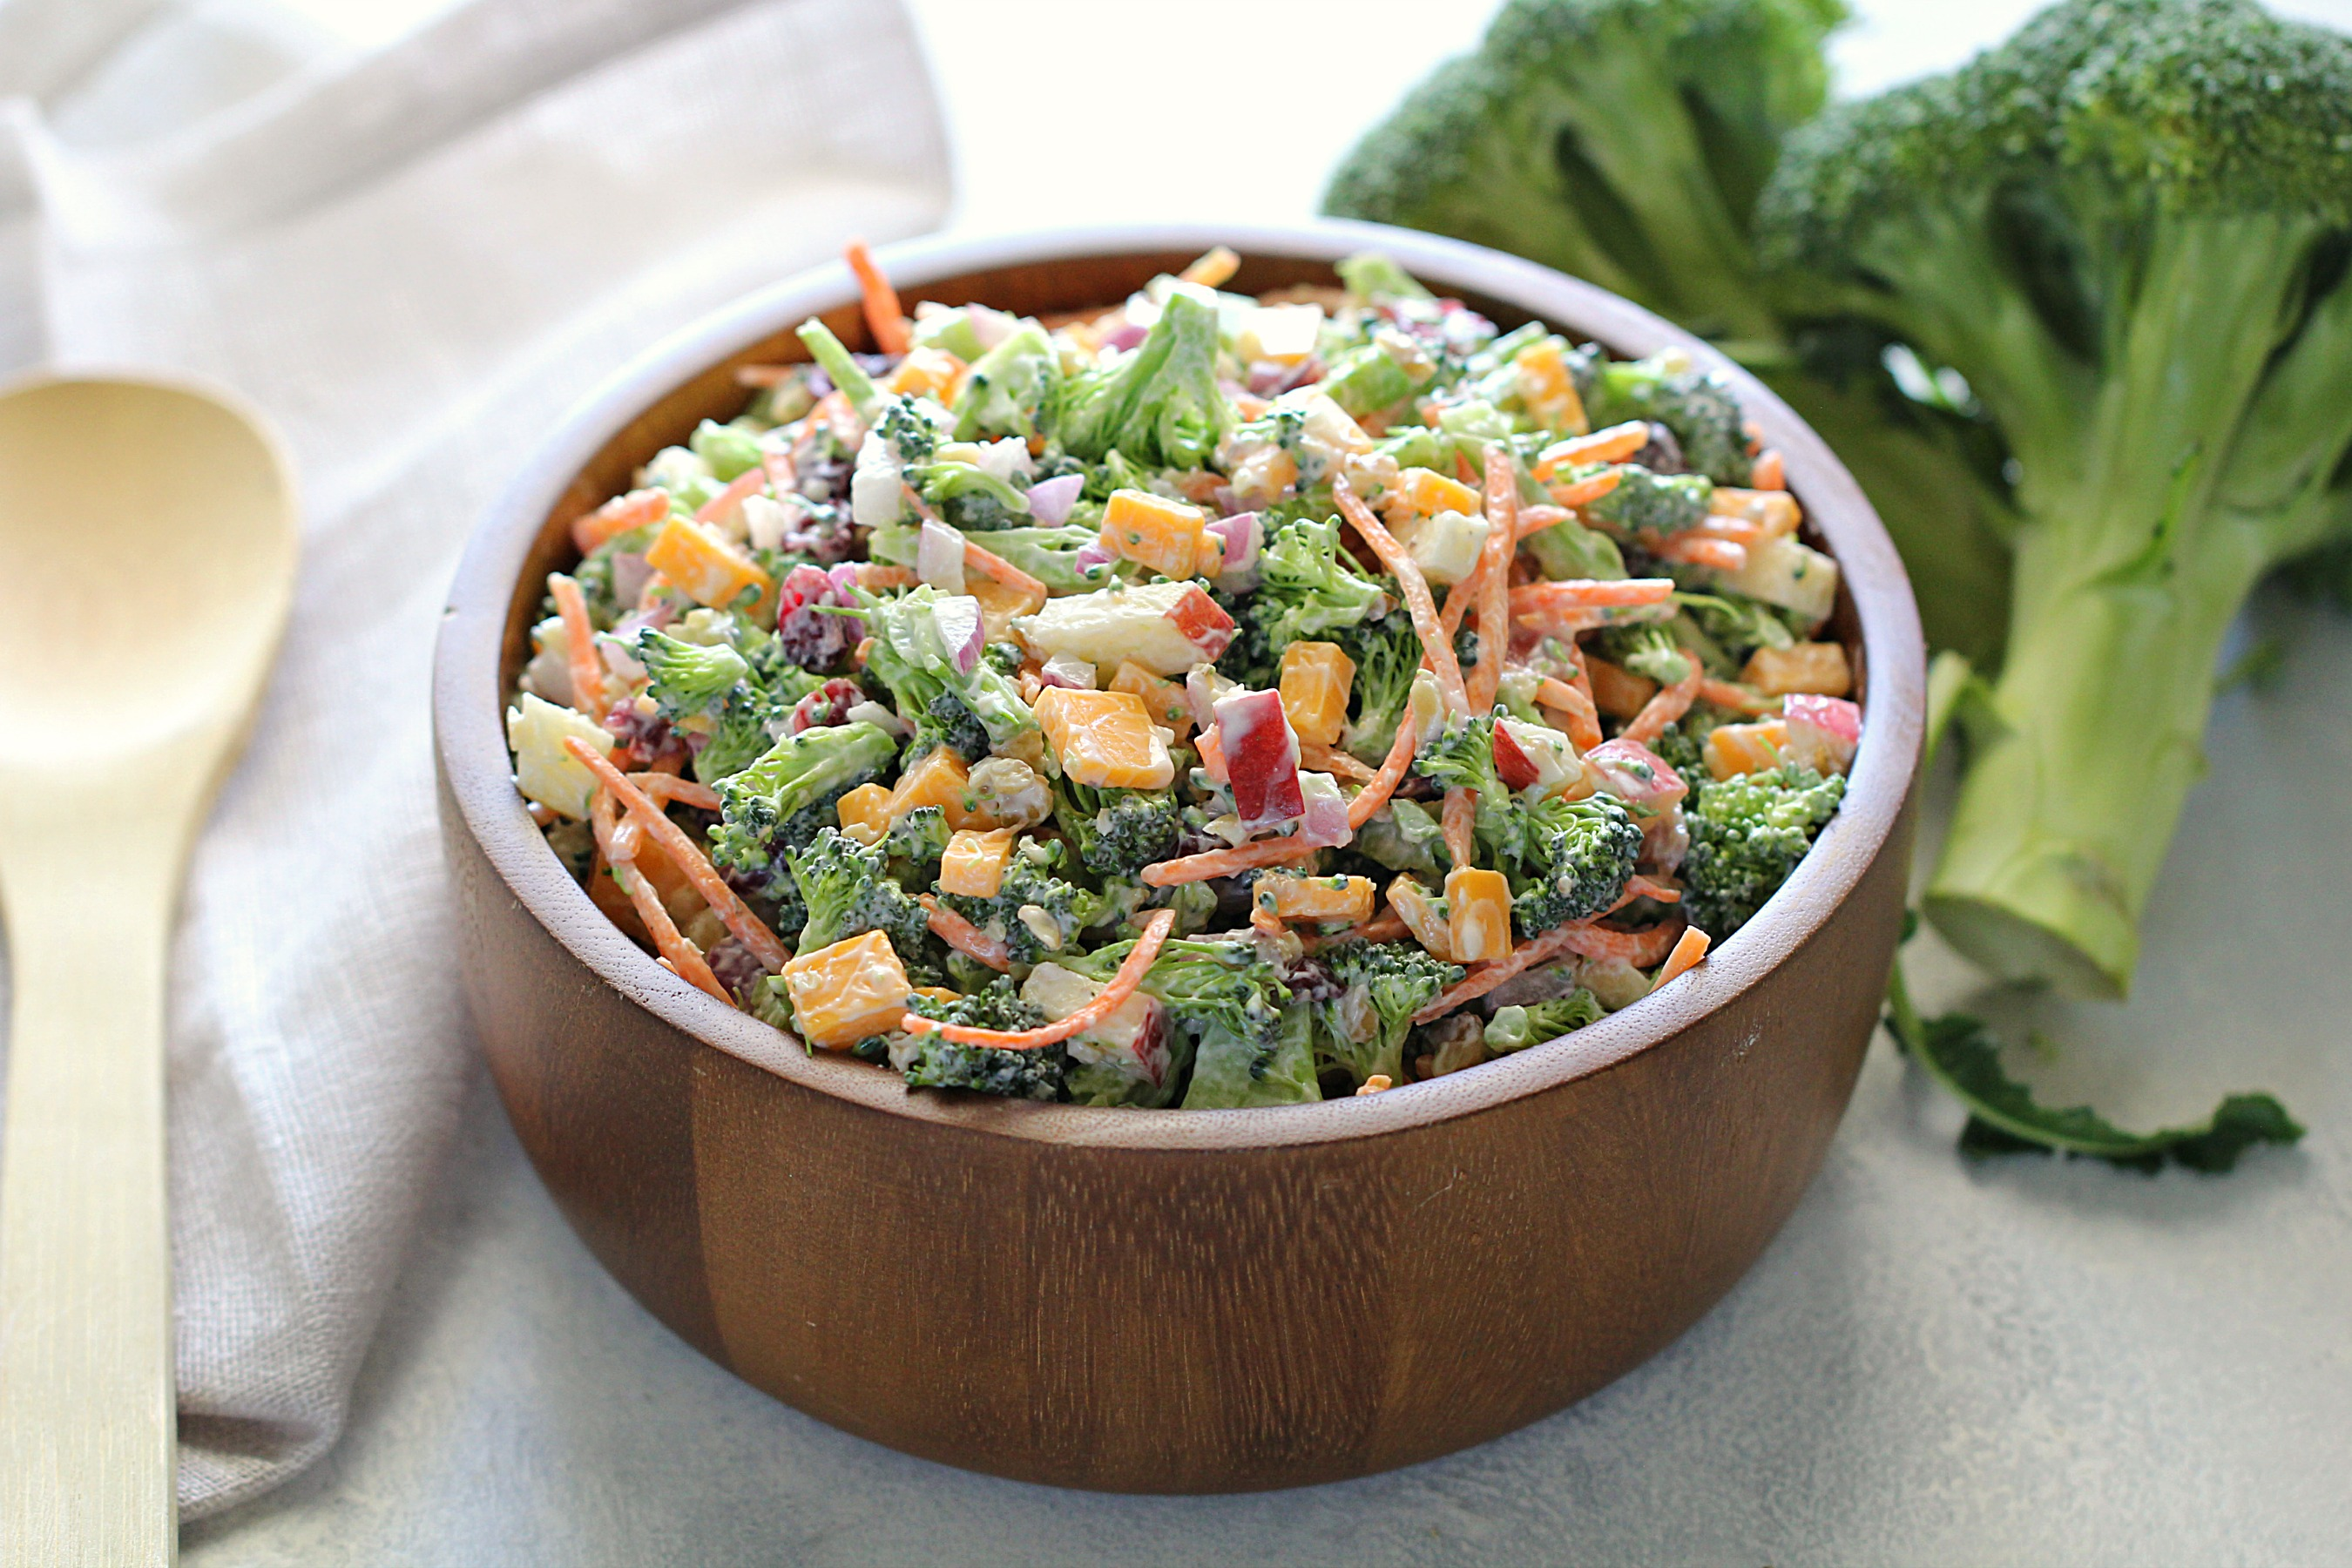 Loaded broccoli salad in wooden bowl